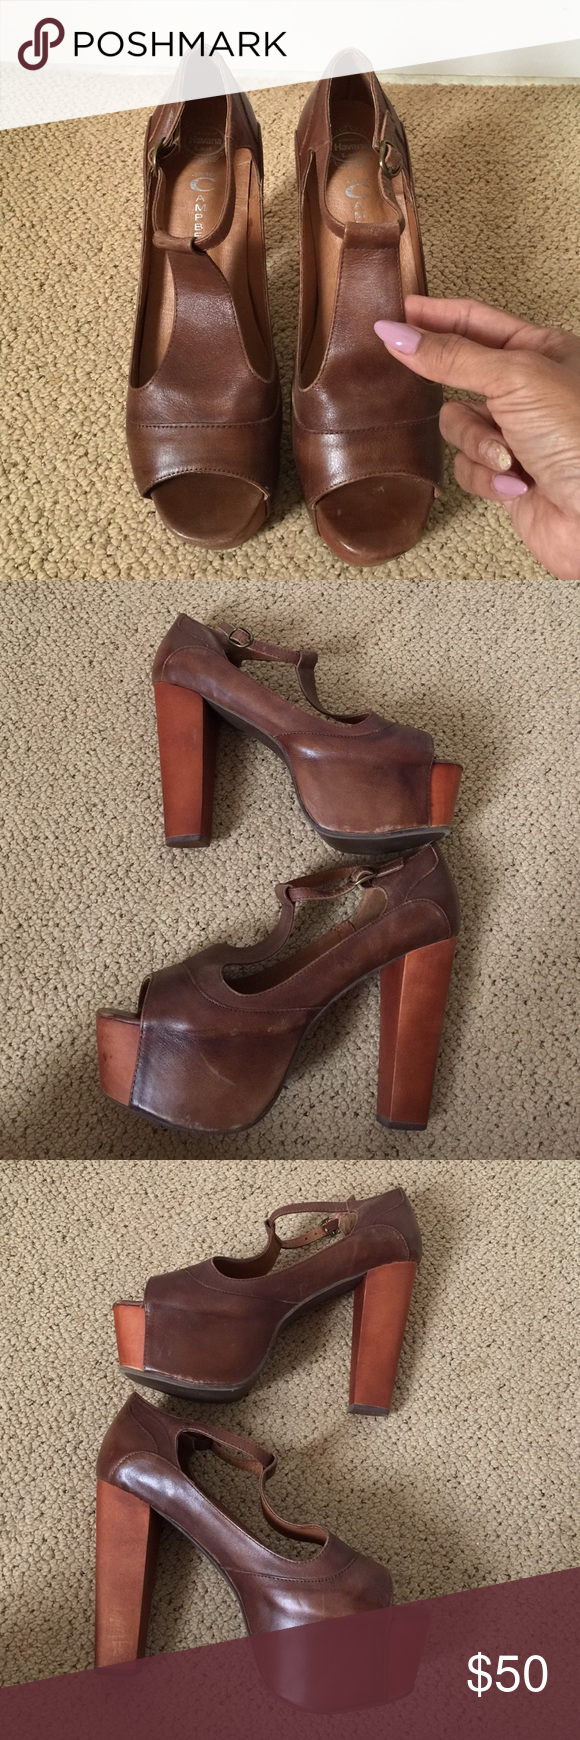 Jeffrey Campbell Foxy Platform Sandal Excellent used condition! Used once. Please keep in mind that this brown leather has a slightly distressed look. No box. Jeffrey Campbell Shoes Platforms